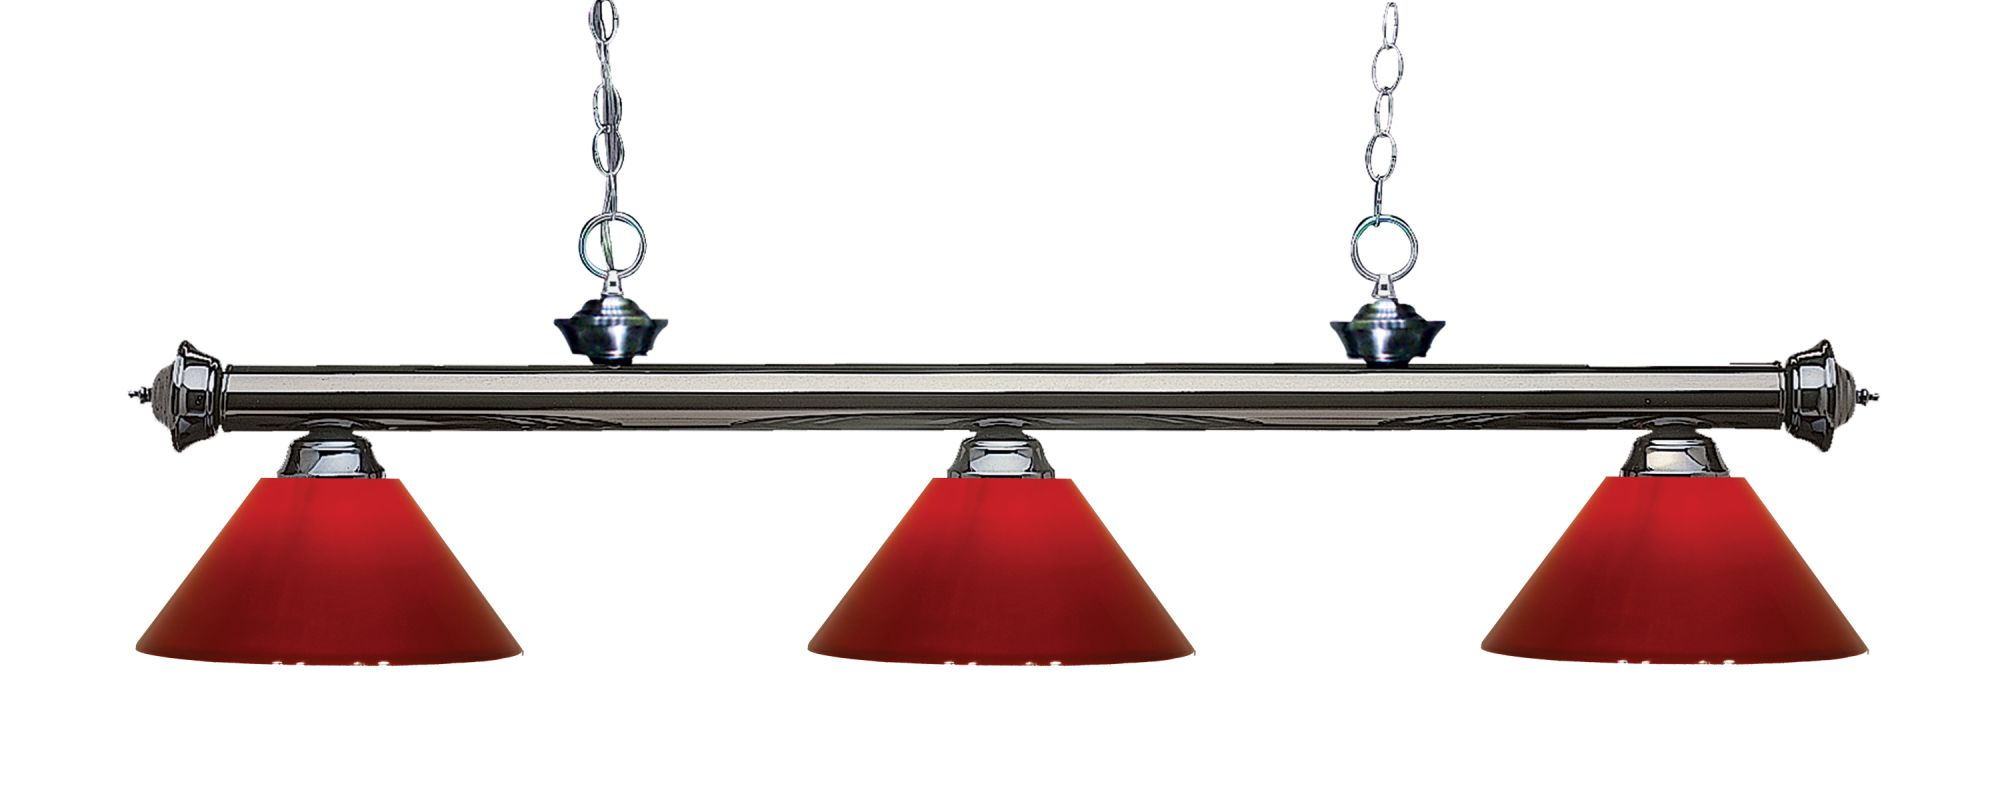 Z-Lite 200-3-PRD Riviera 3 Light Island/Billiard Chandelier with Red Sale $296.00 ITEM: bci2566380 ID#:200-3GM-PRD UPC: 685659044164 :